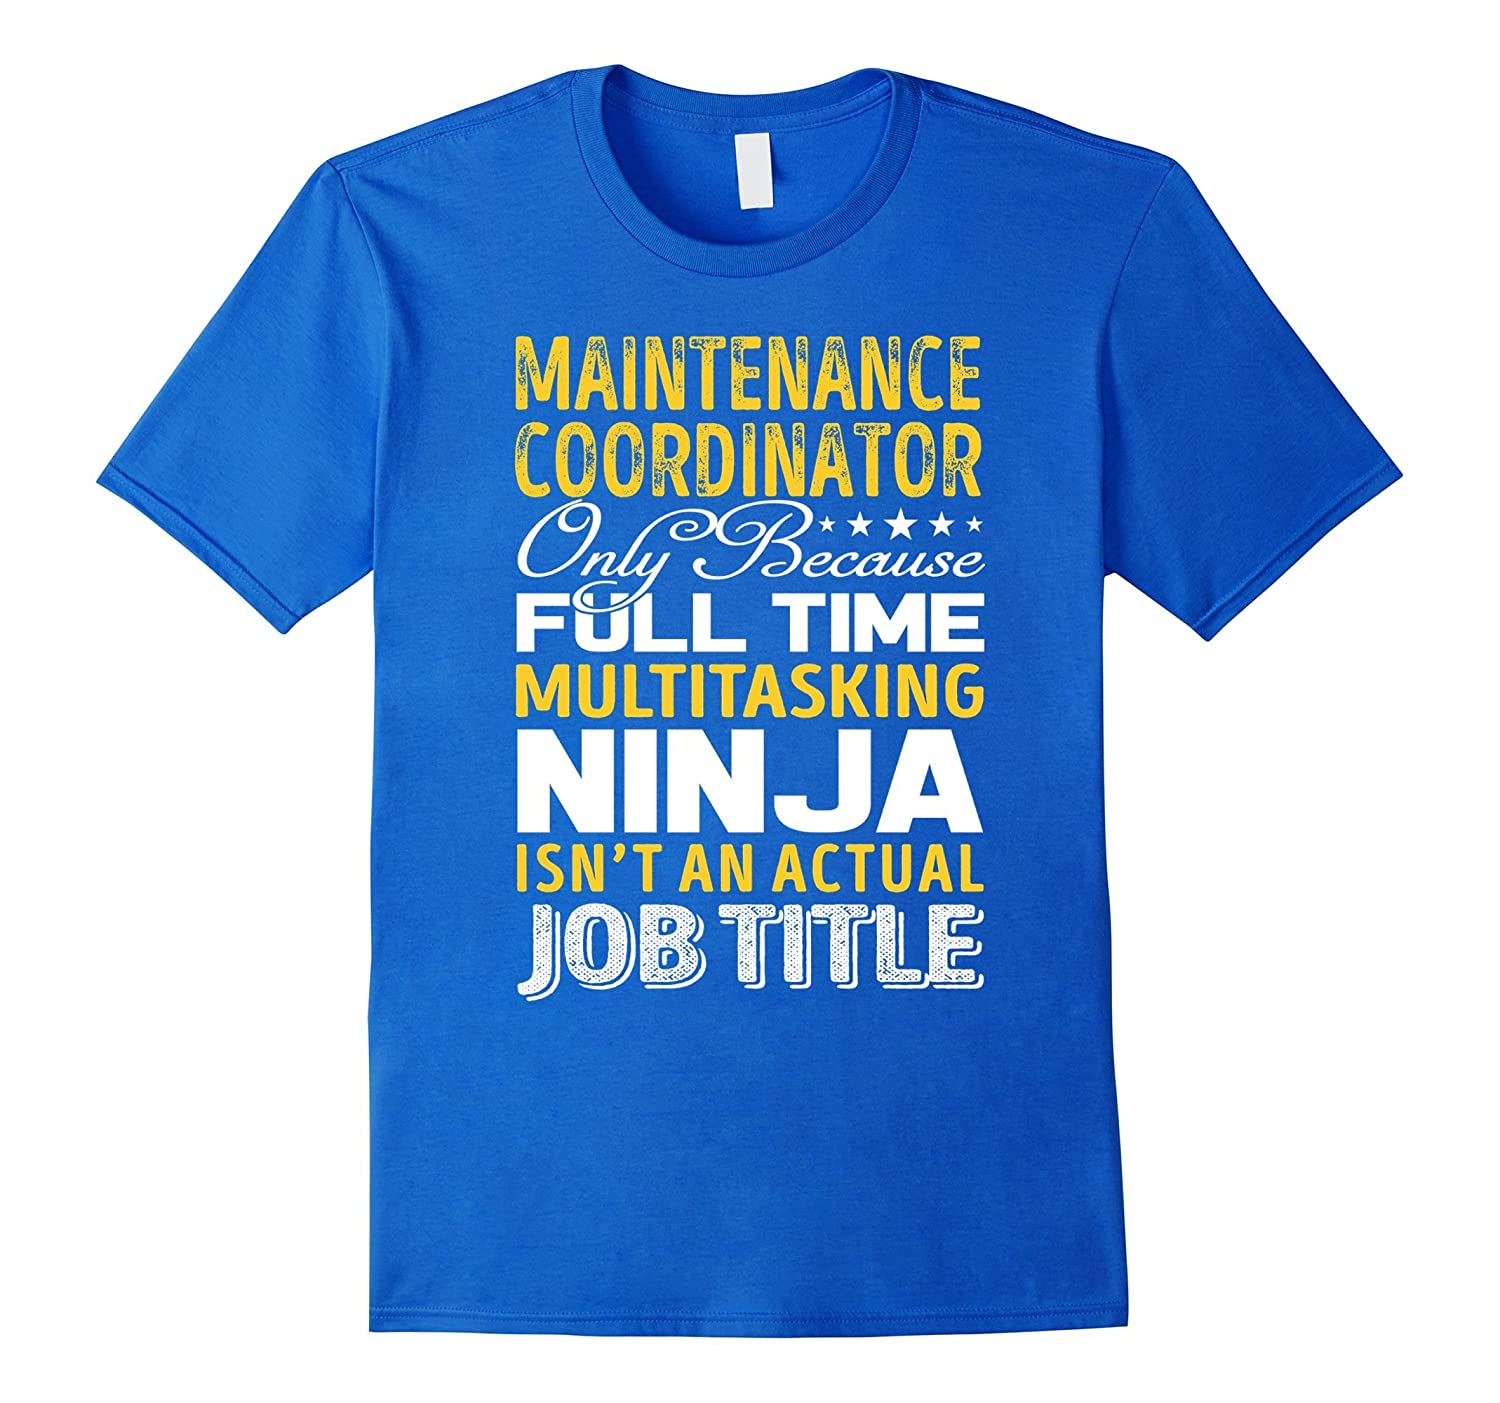 Maintenance Coordinator Is Not An Actual Job Title TShirt-TJ